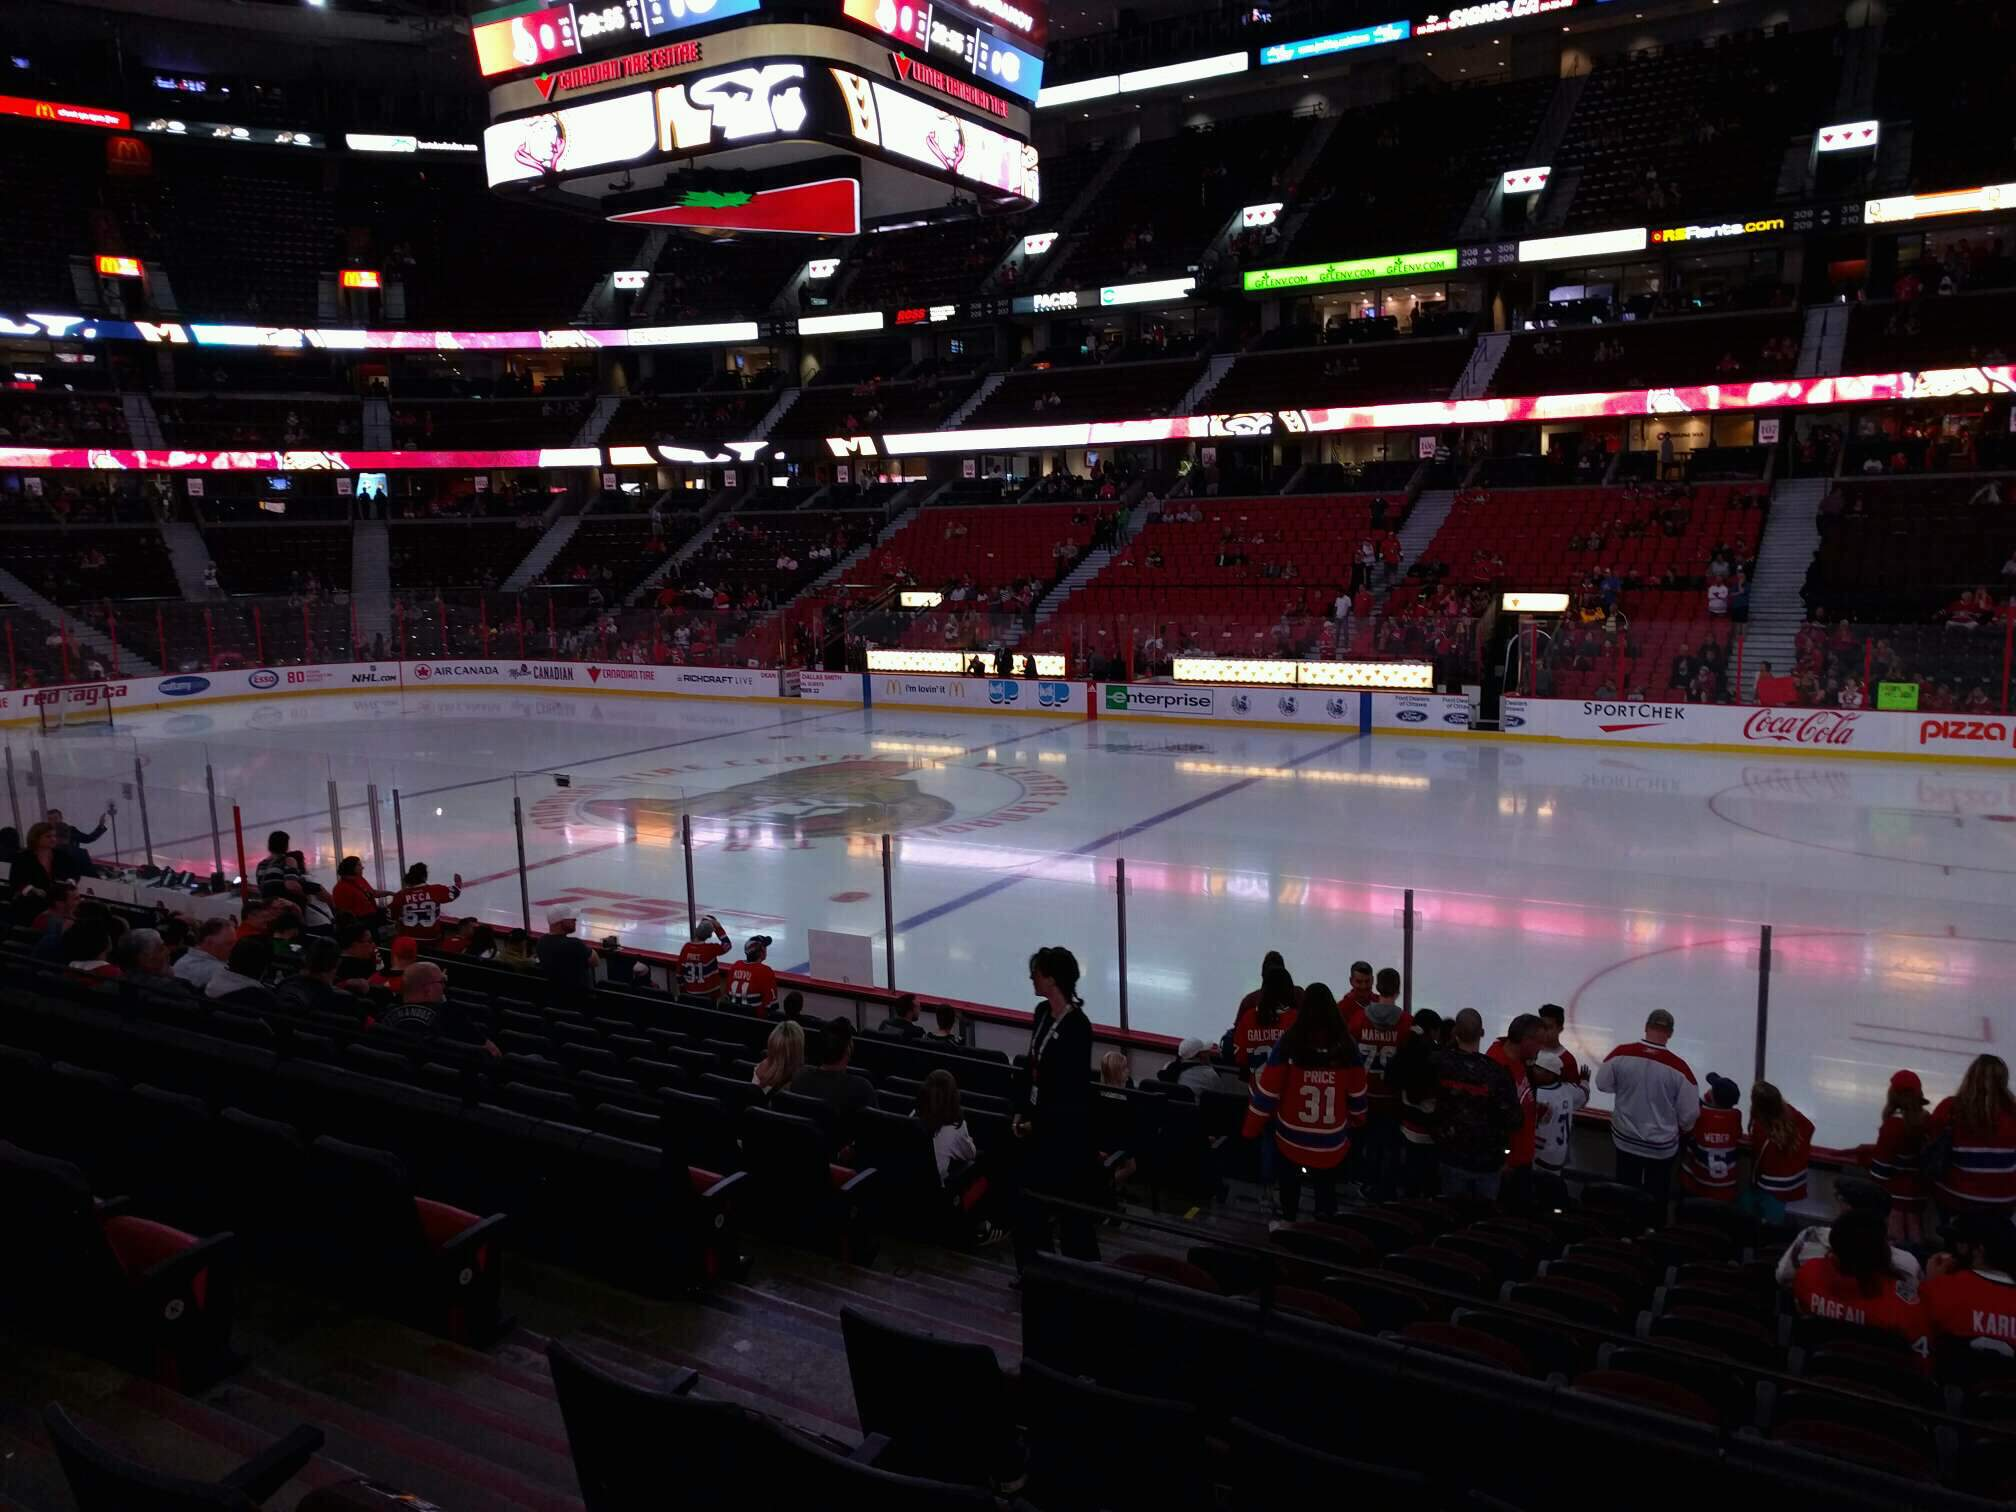 Canadian Tire Centre Section 114 Row n Seat 10